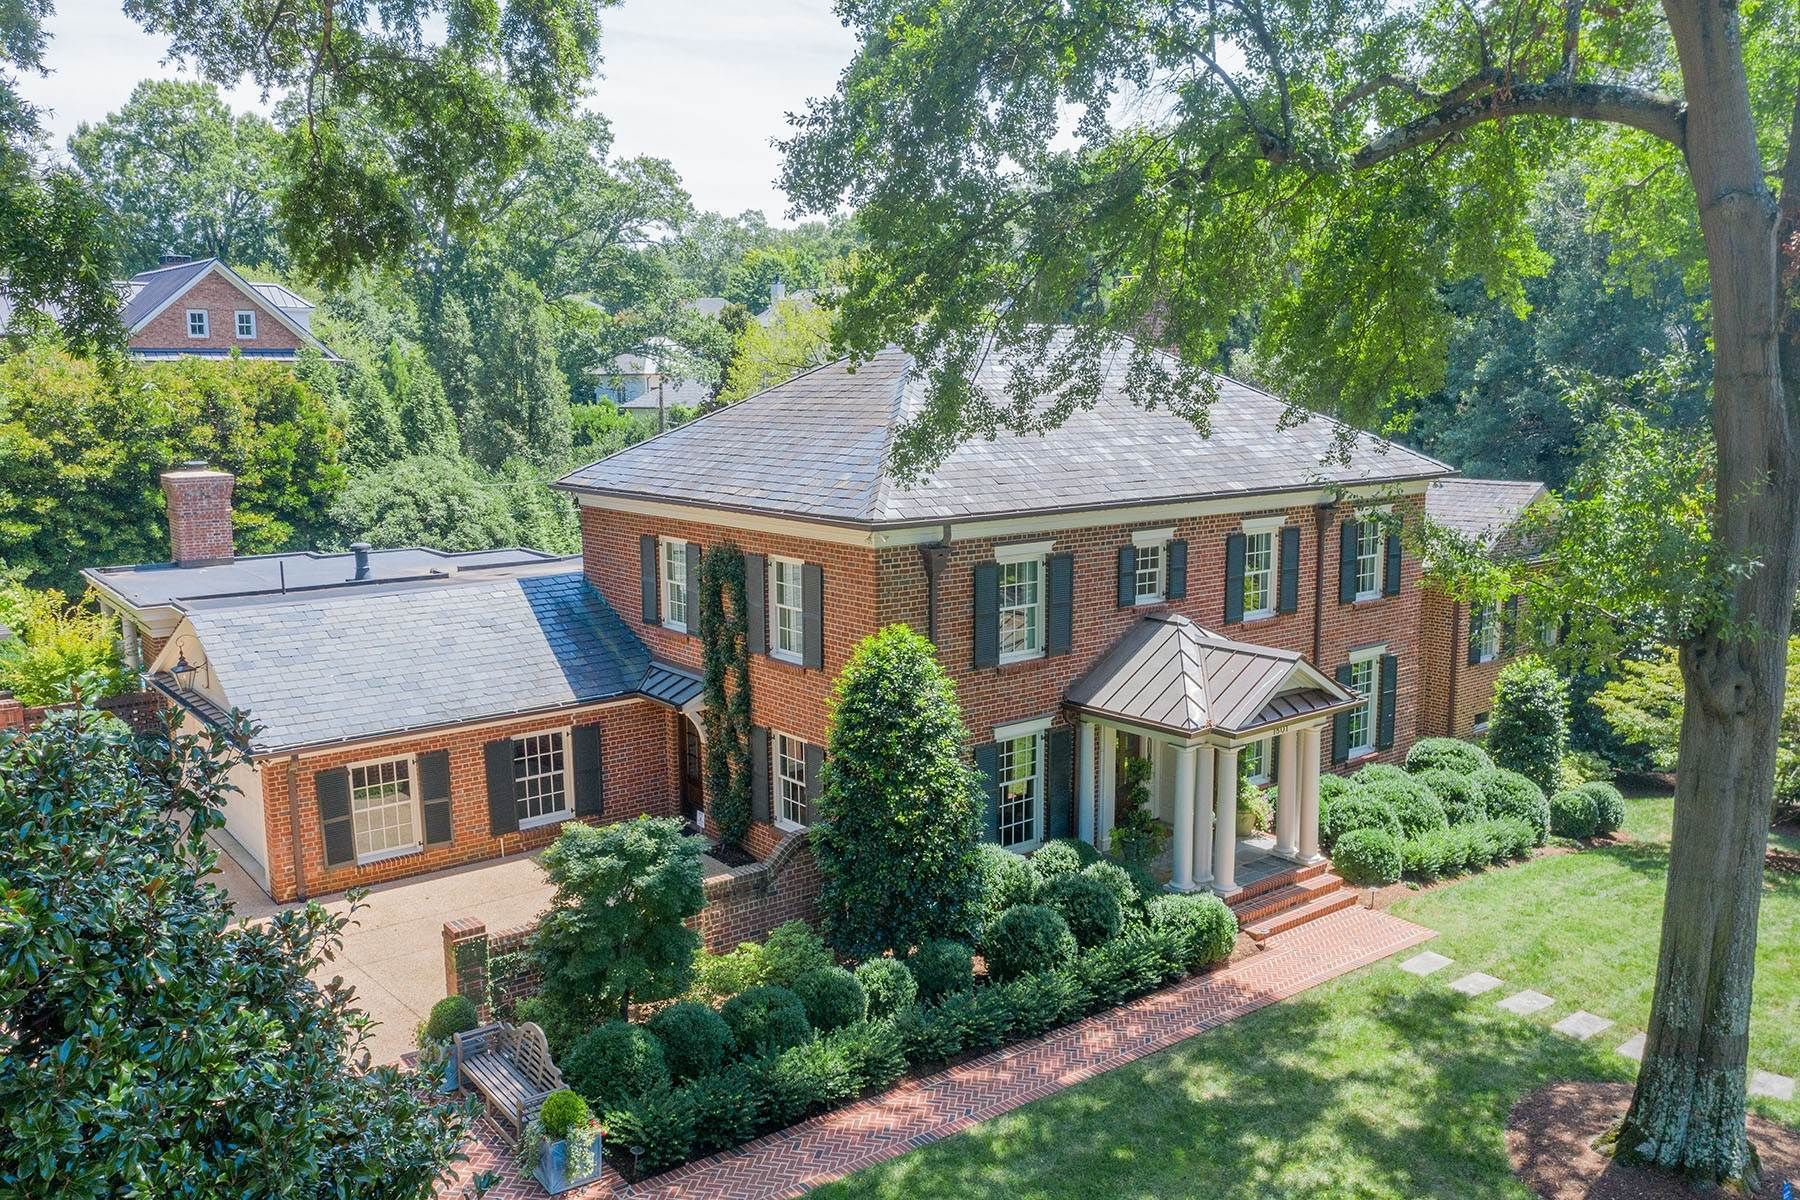 Single Family Homes for Active at MYERS PARK 1801 Queens Road Charlotte, North Carolina 28207 United States